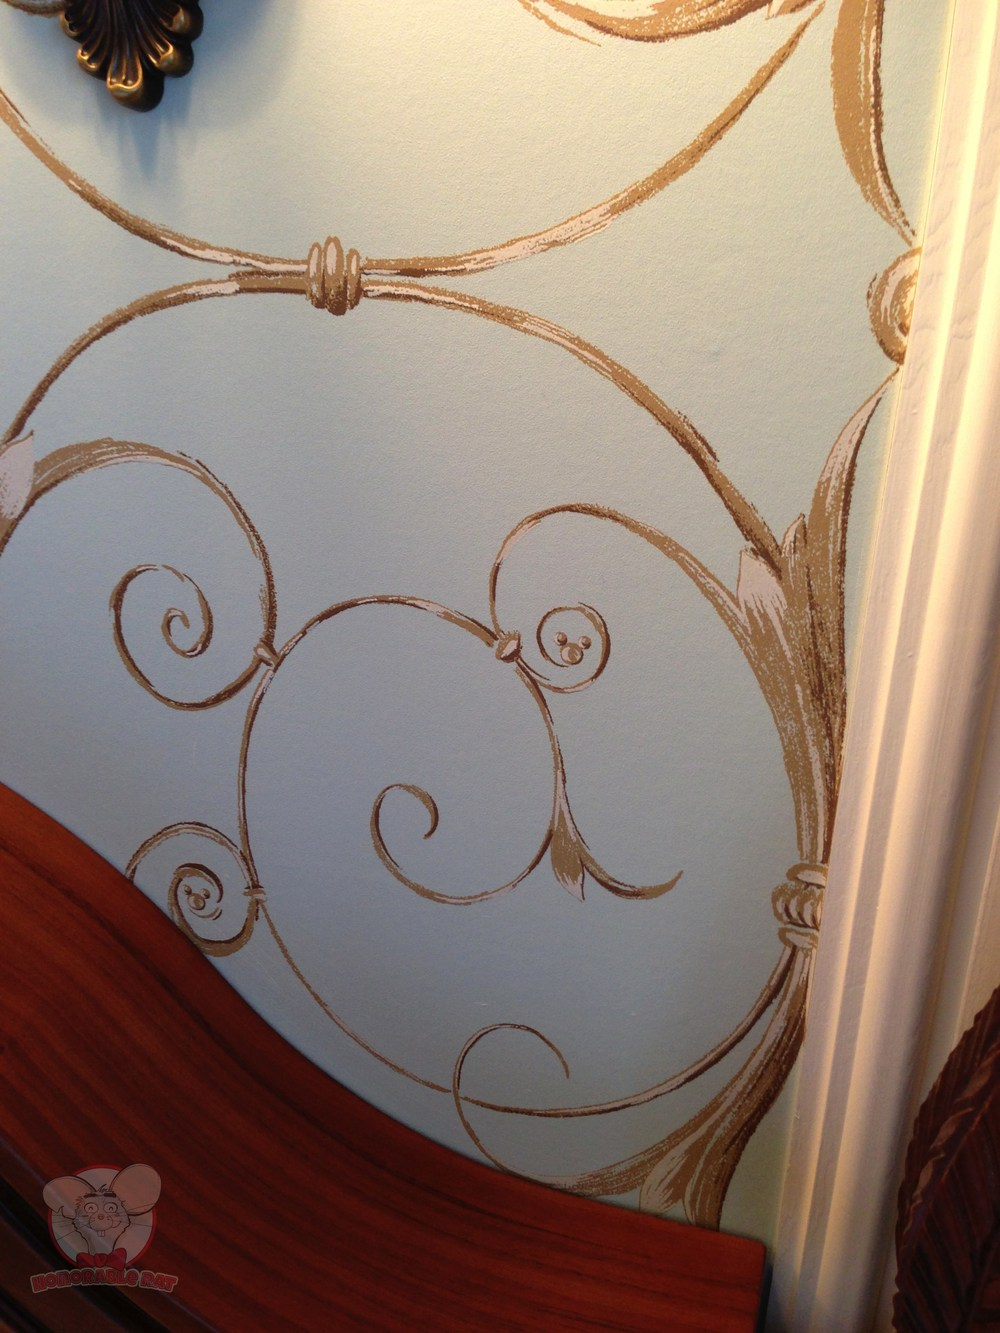 Can you spot the hidden Mickey on this wallpaper?